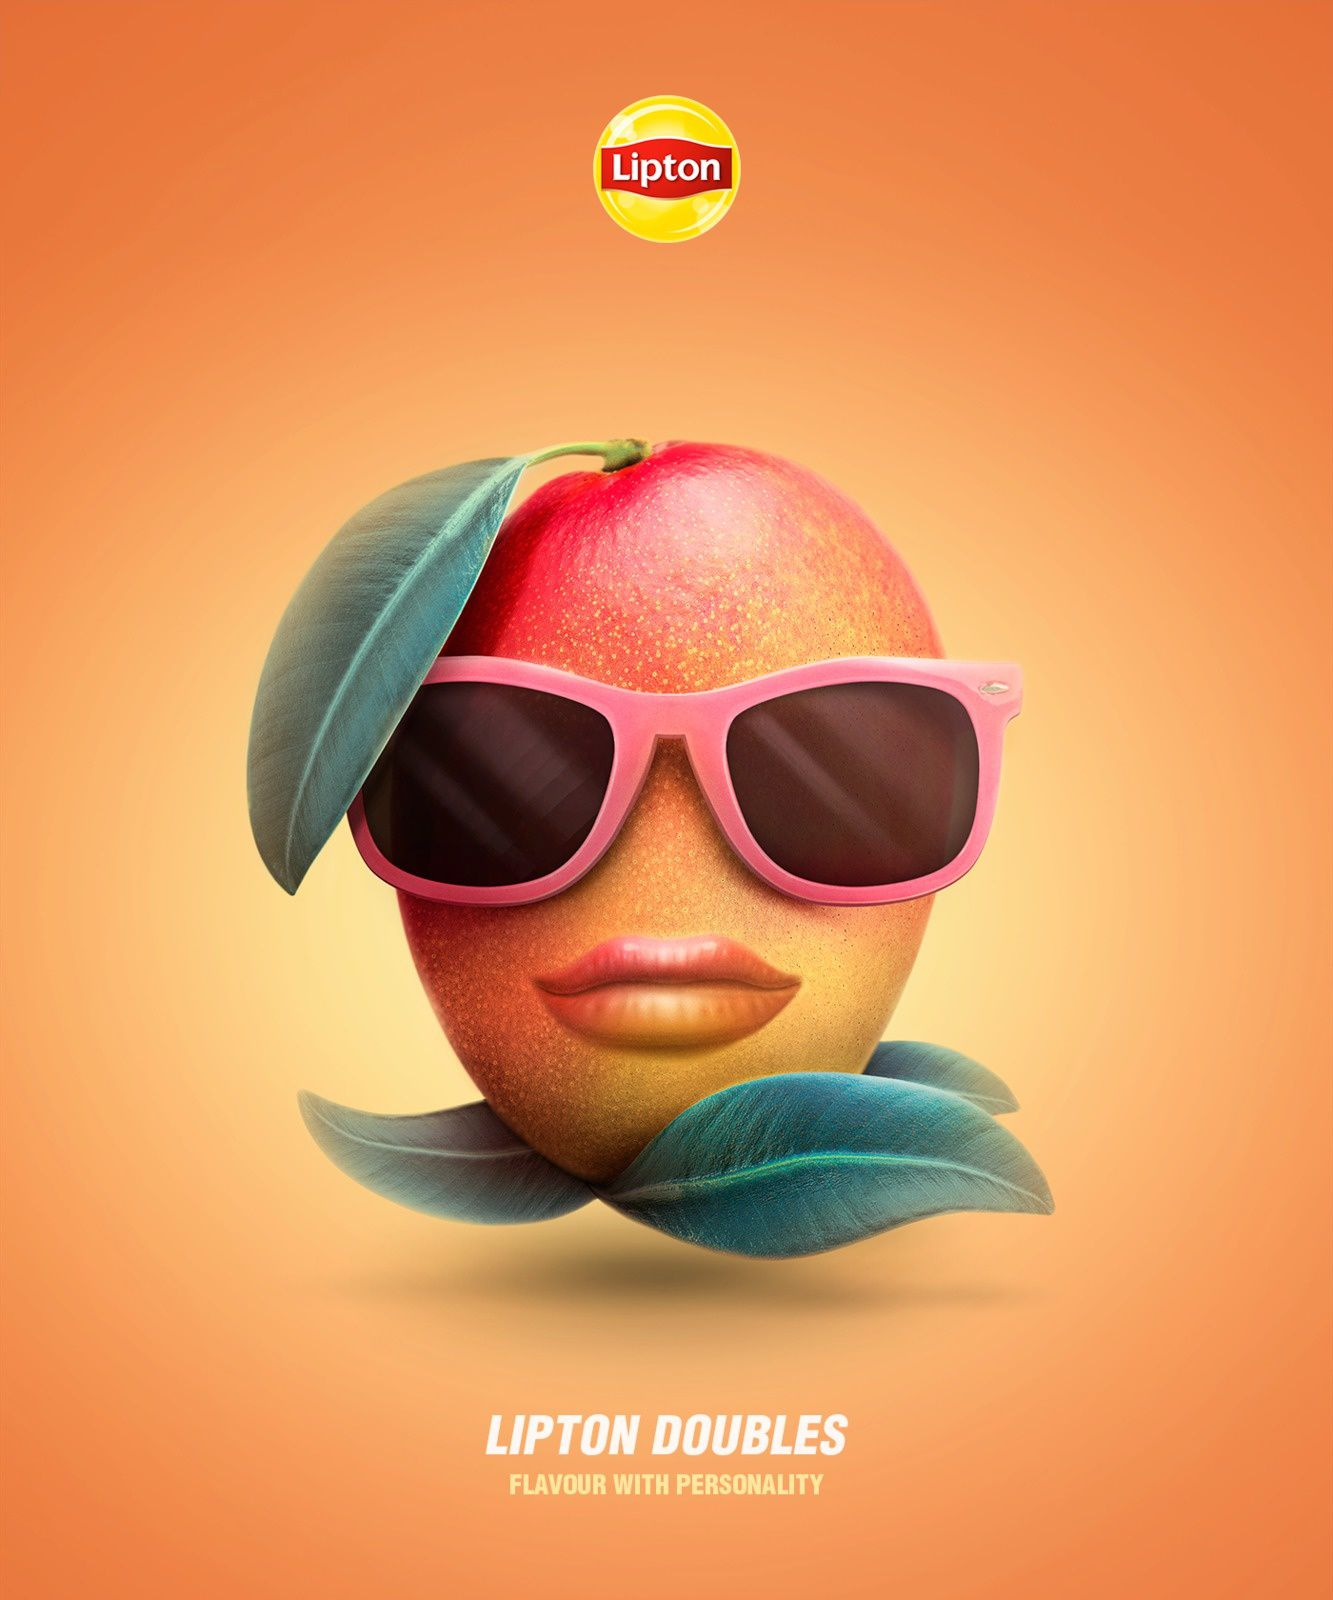 "Lipton - ""Lipton doubles. Flavour with personality"" (thé aromatisé) I Agence : Isobar, Portugal (juillet 2017)"